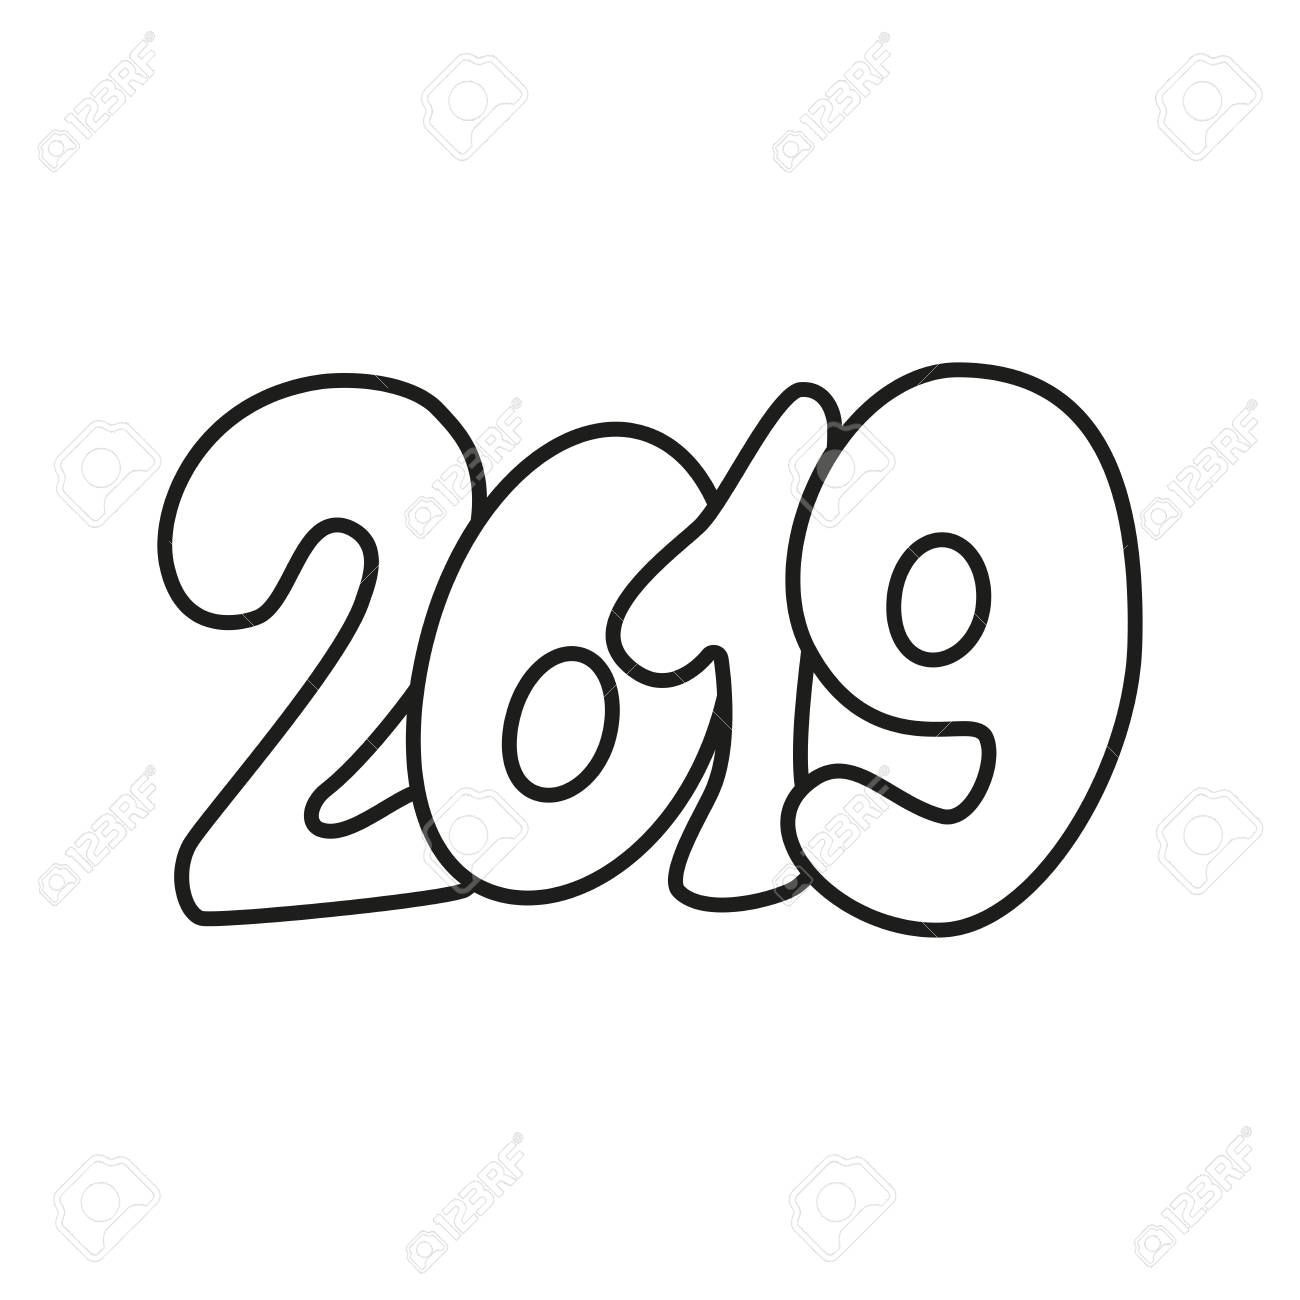 Happy New Year 2019 text design black and white.